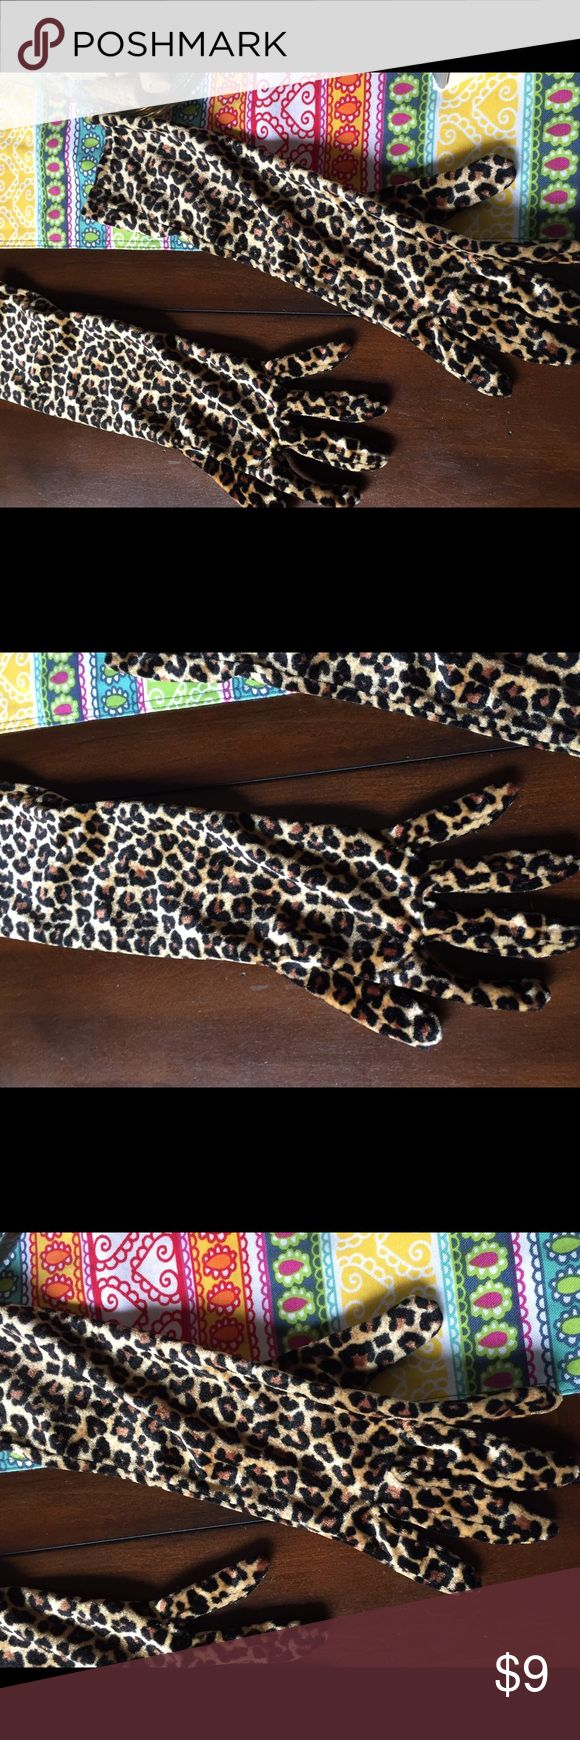 Velvet animal print gloves Fun gloves!  Used for a costume so worn once Accessories Gloves & Mittens